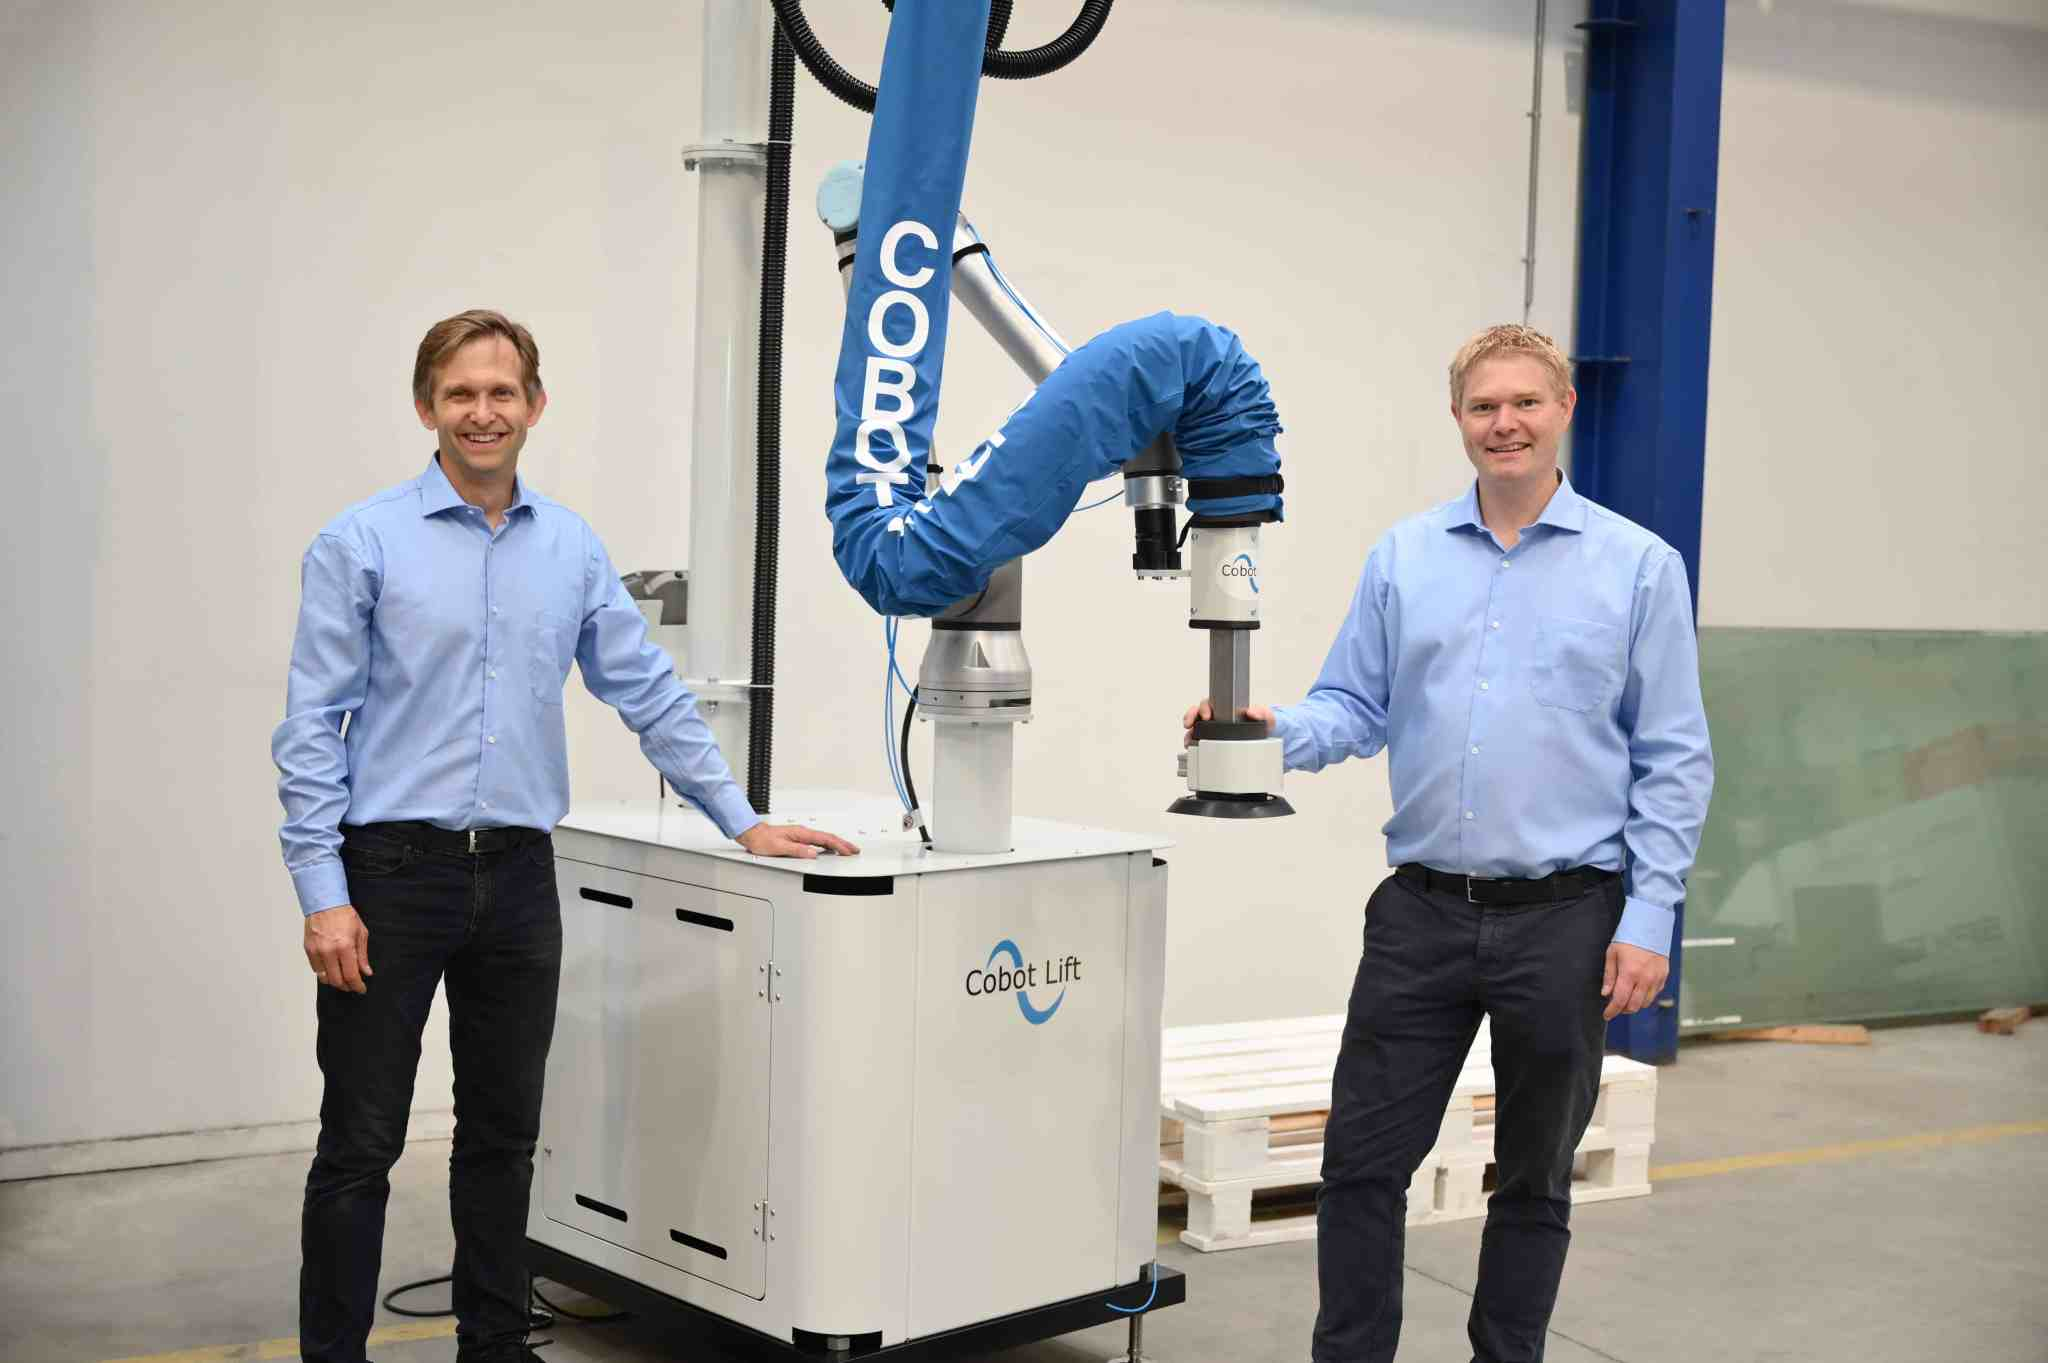 the CEO and CTO newt to the mobile cobot lift